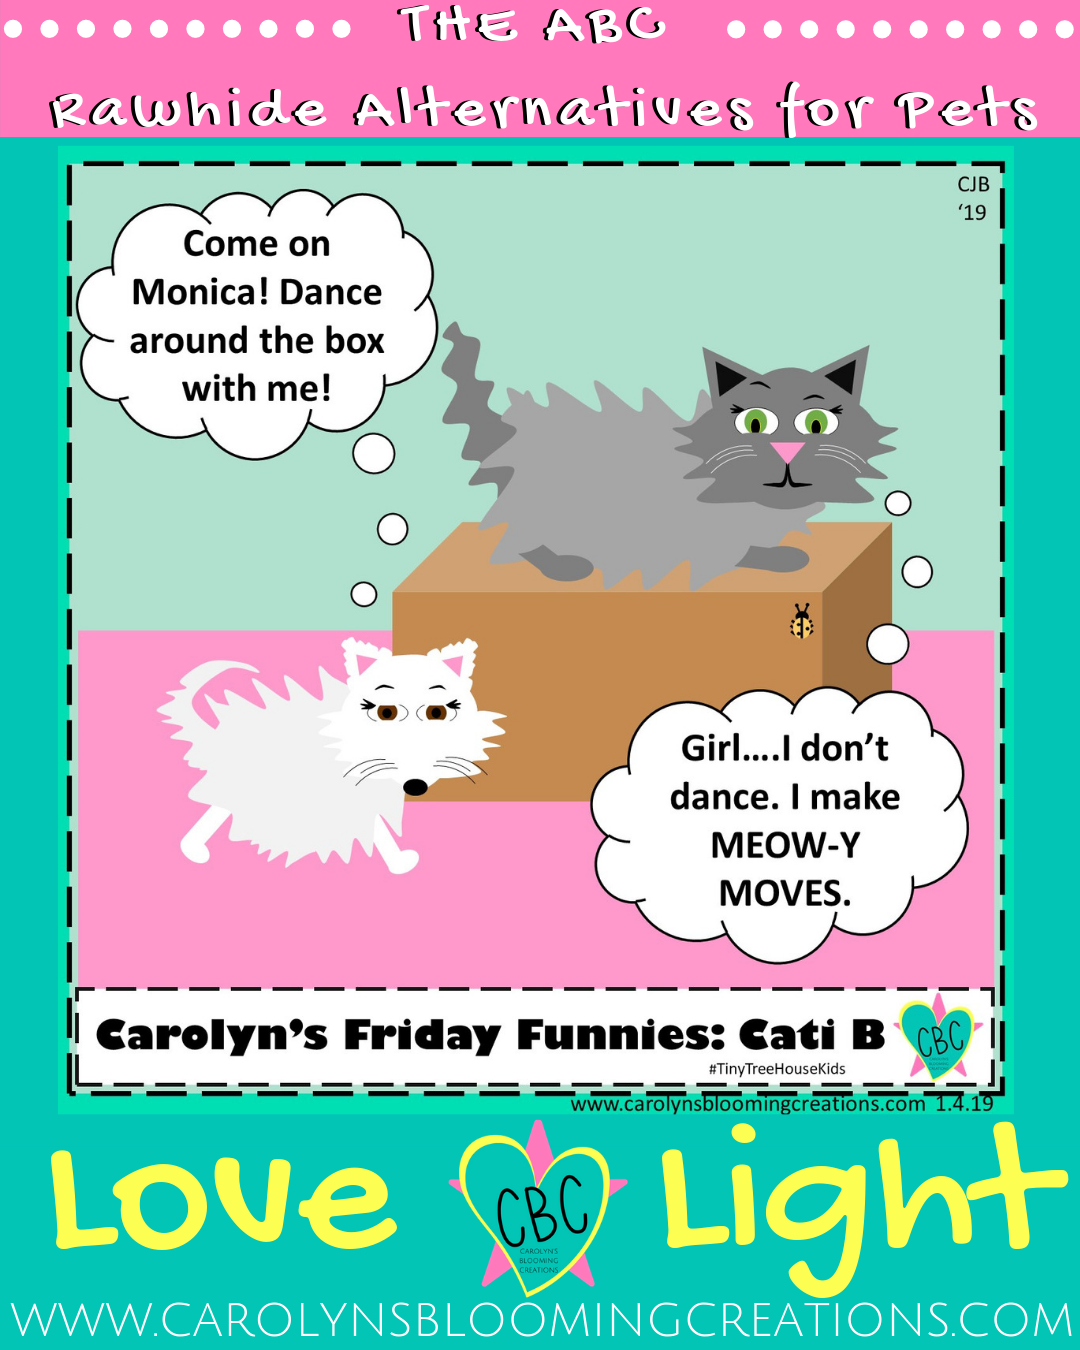 Carolyn's Friday Funnies: Rawhide Alternatives for Pets  Pin me! www.carolynsbloomingcreations.com  Art by Carolyn J. Braden, Media: Microsoft PowerPoint